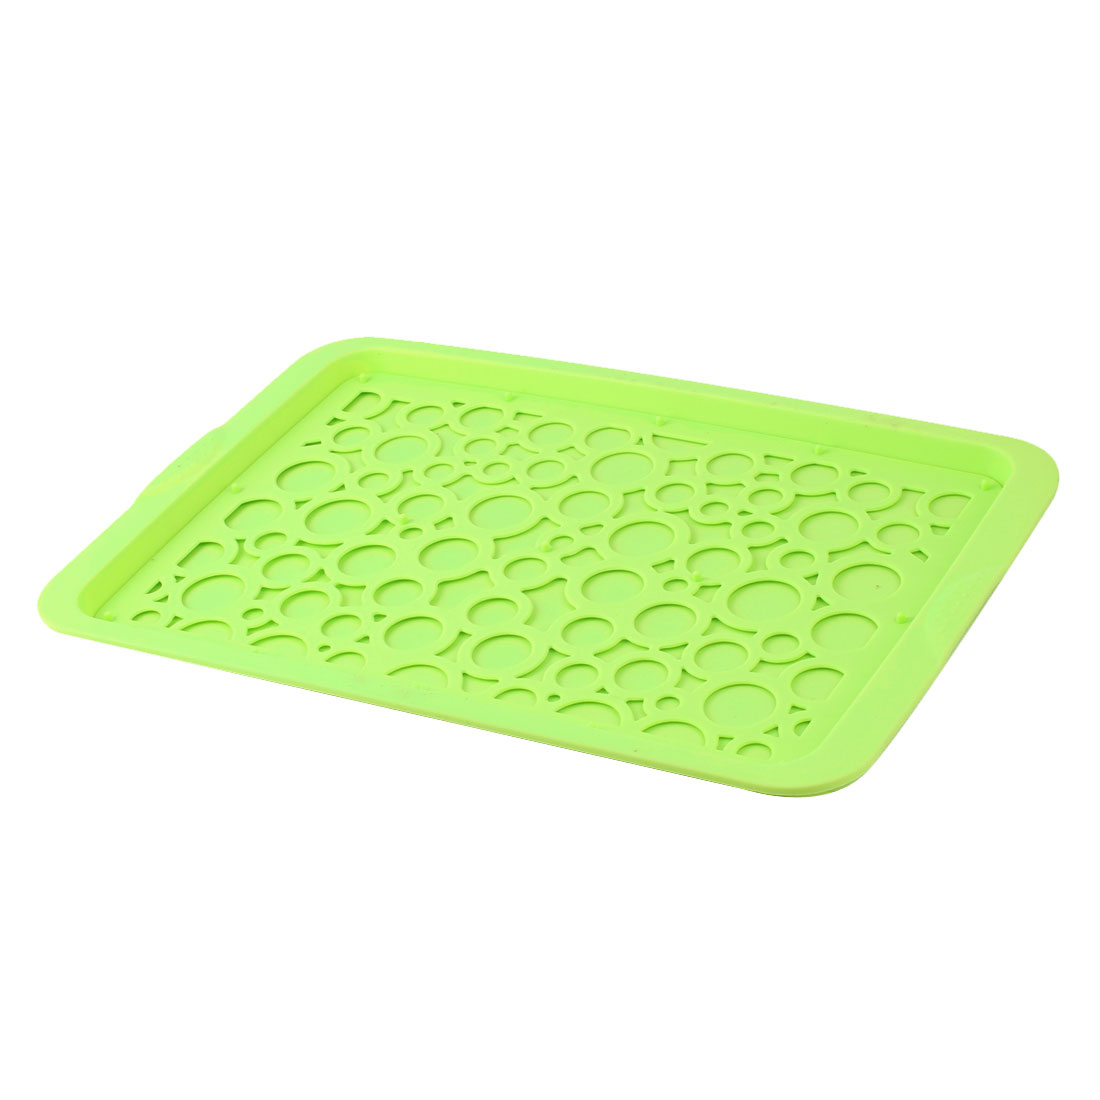 Plastic Rectangular Shaped Fast Food Cafeteria Cafe Serving Tray Light Green